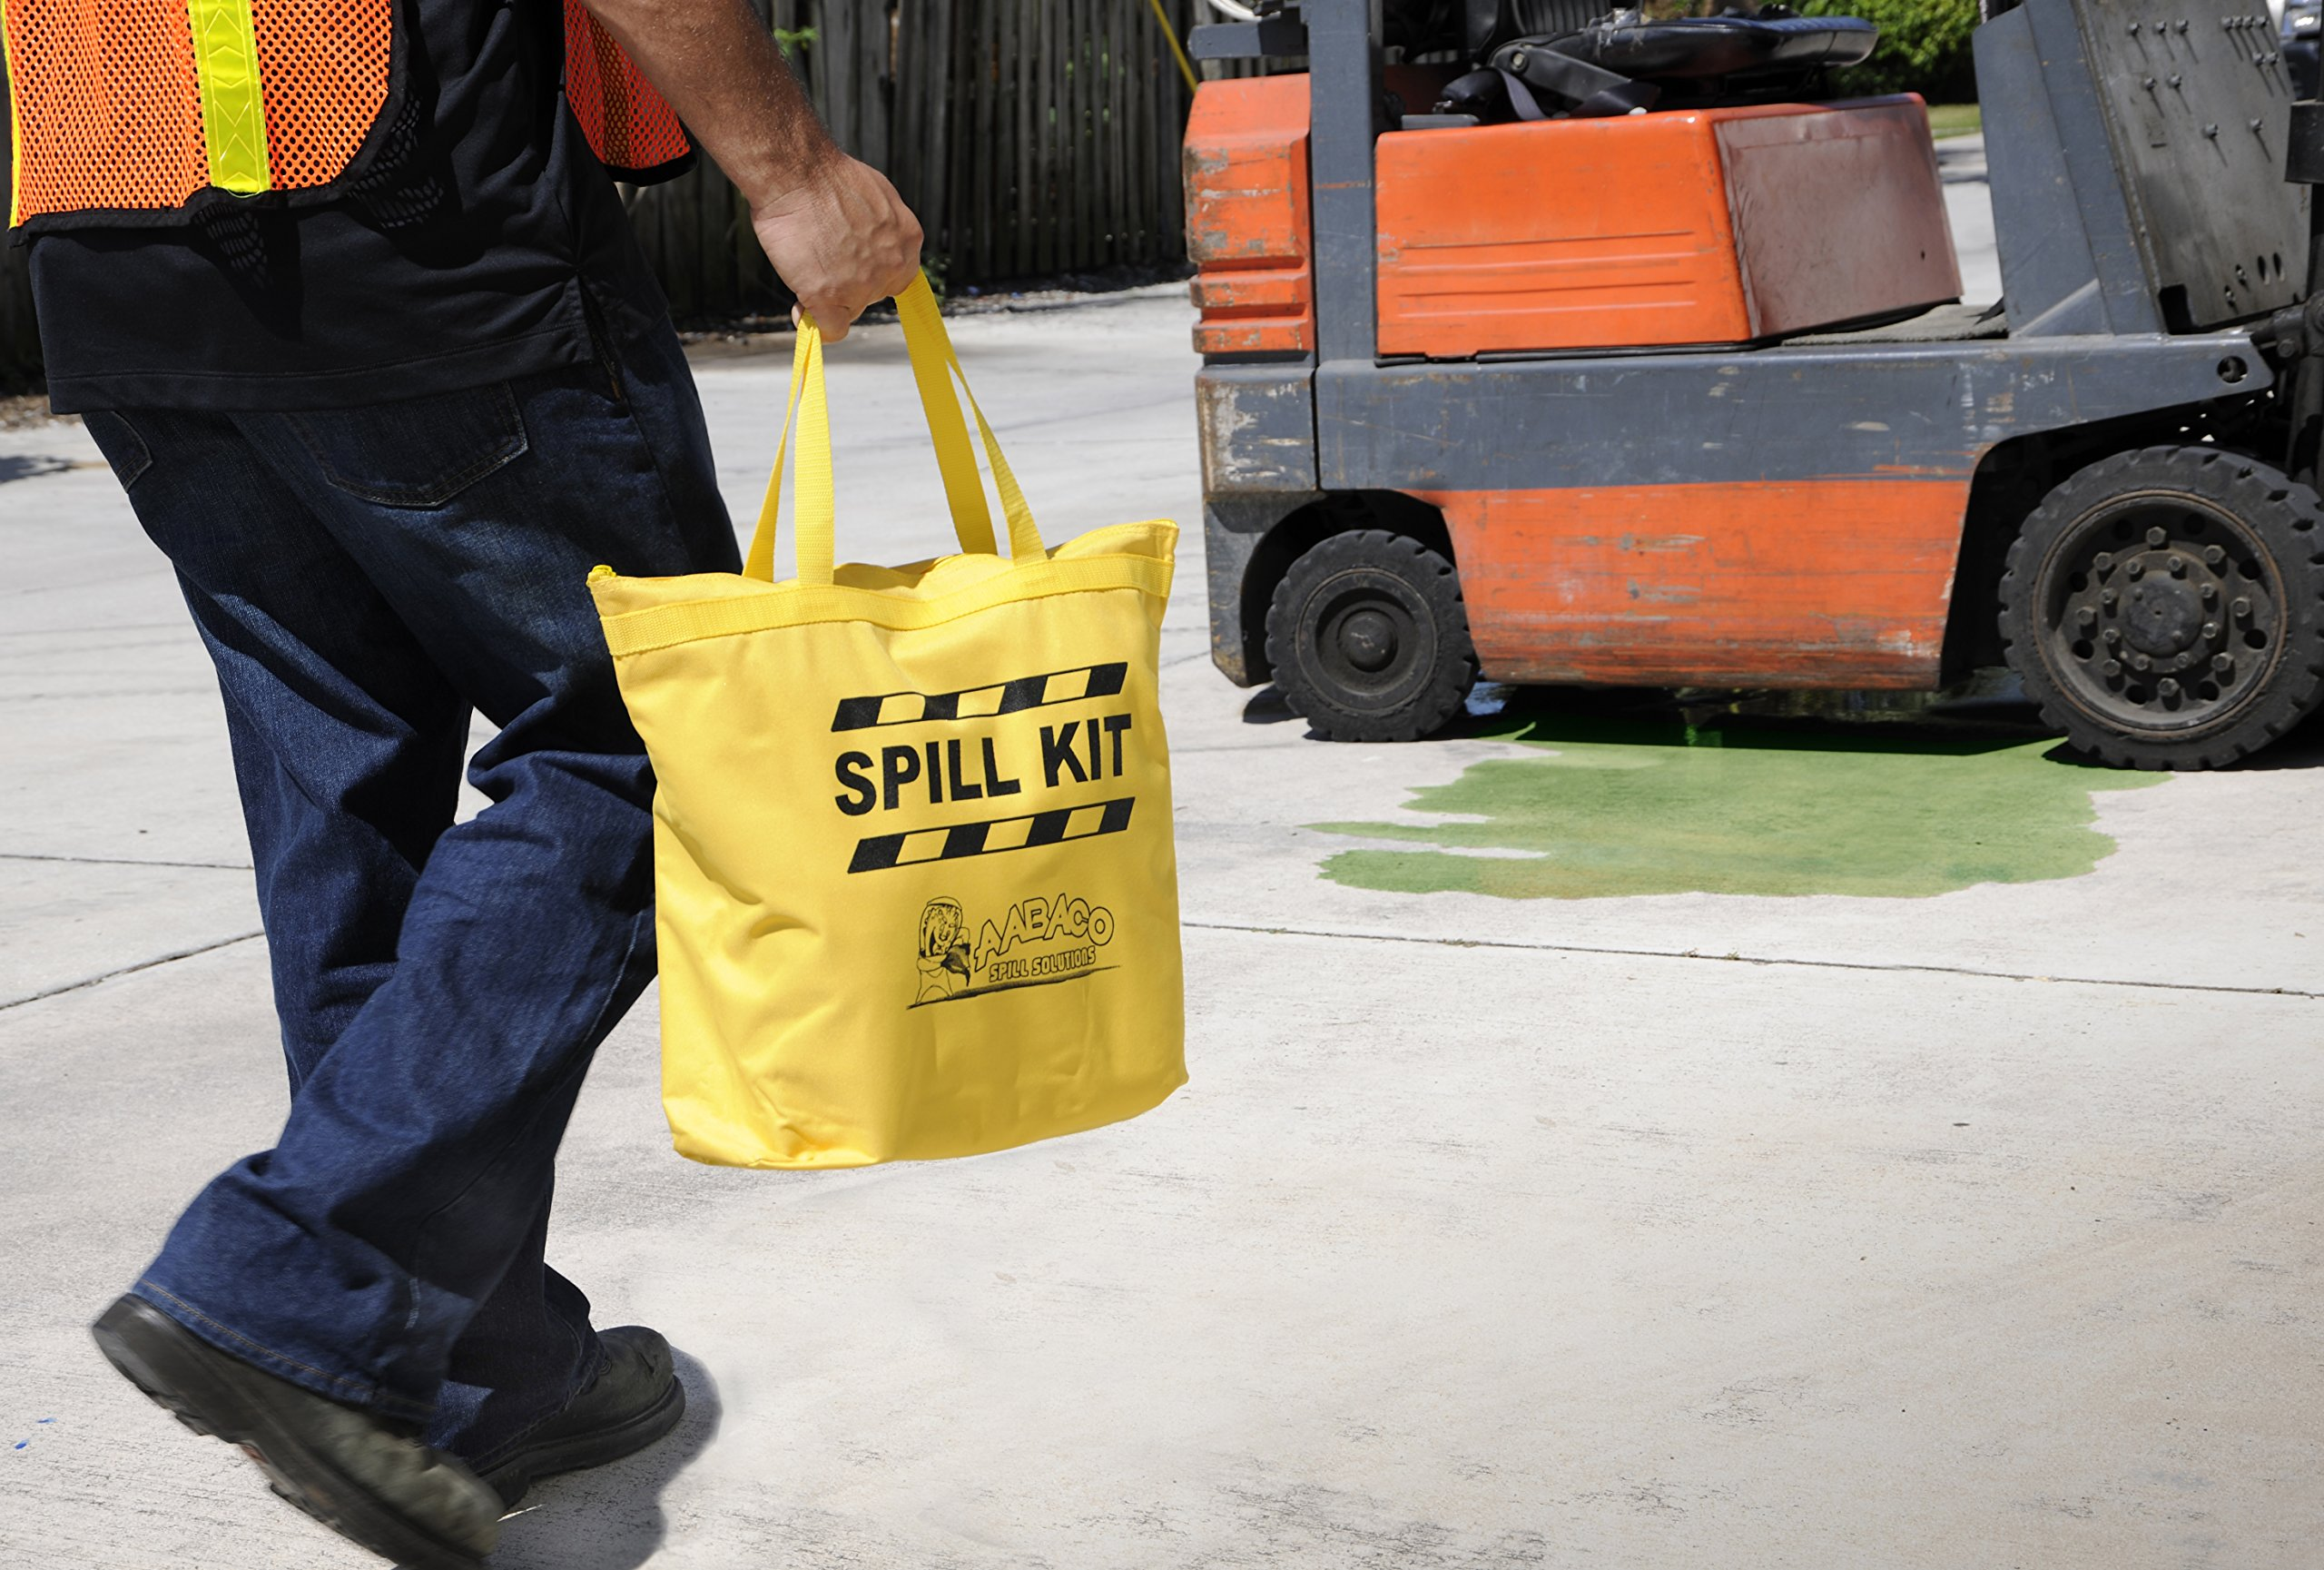 AABACO Universal Spill KIT – Perfect Spill Kits for Trucks - in Portable High Visibility Yellow Tote Bag –for Pesticide or Chemical Spill Response - Oil Containment (4 Kits)